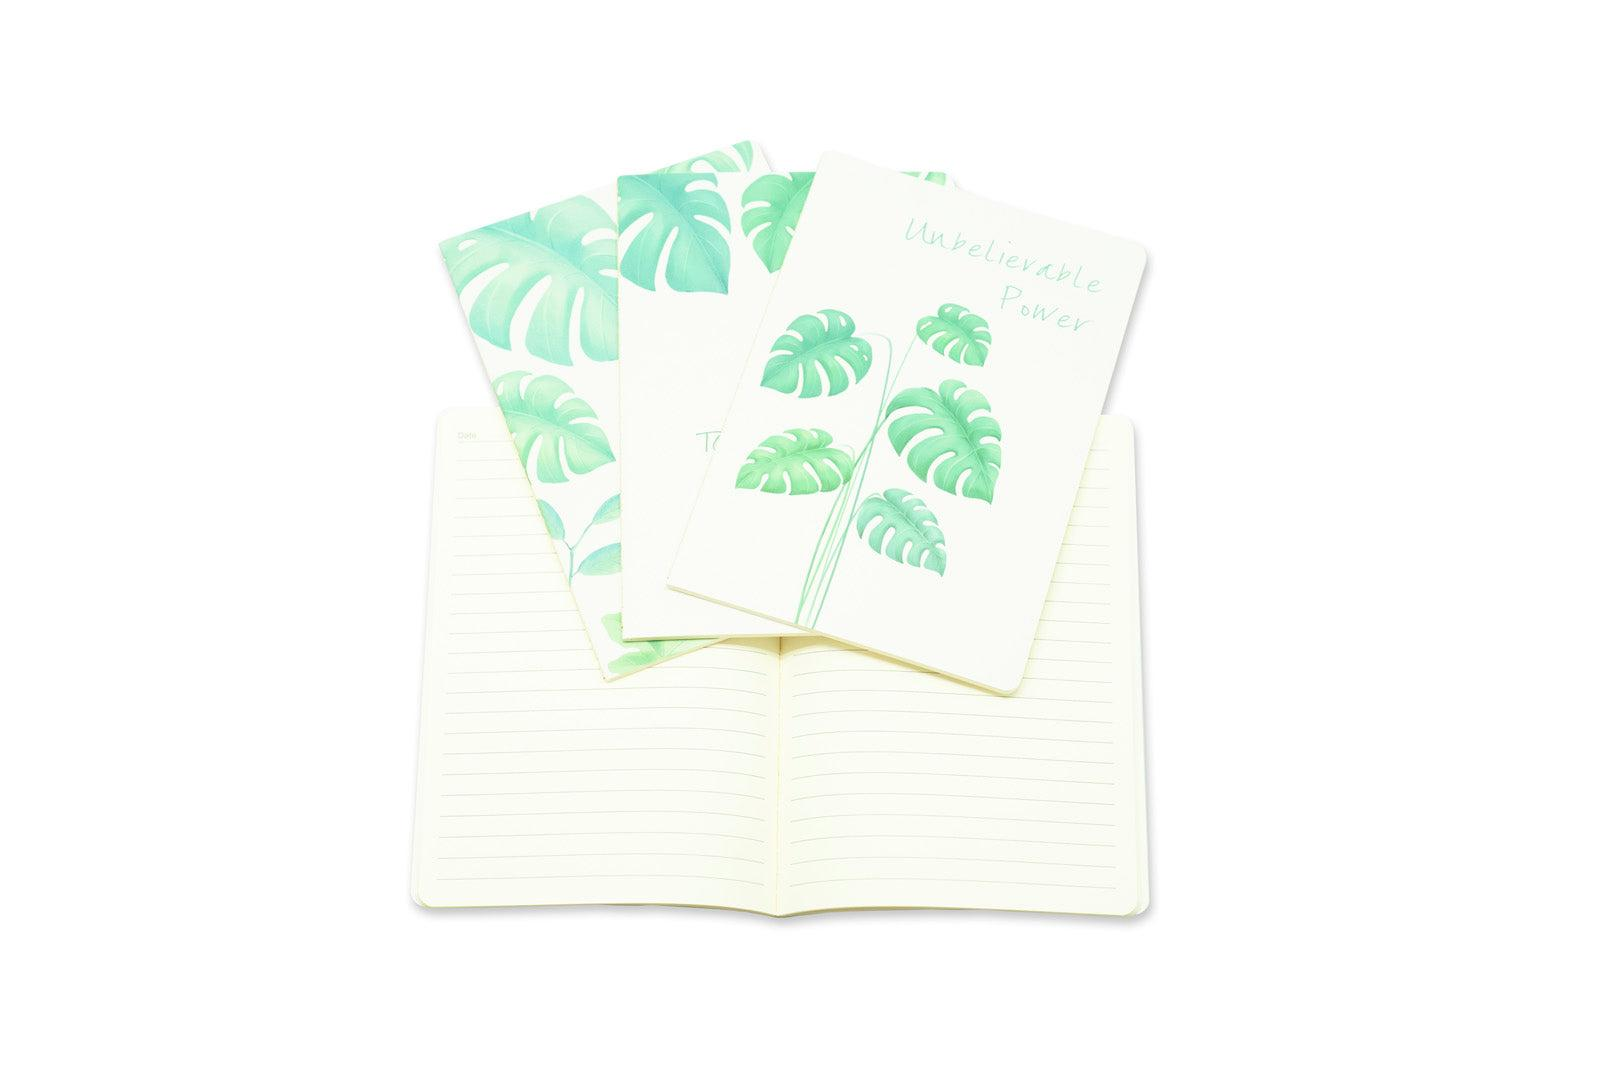 Watercolor Motivation Theme Notebook